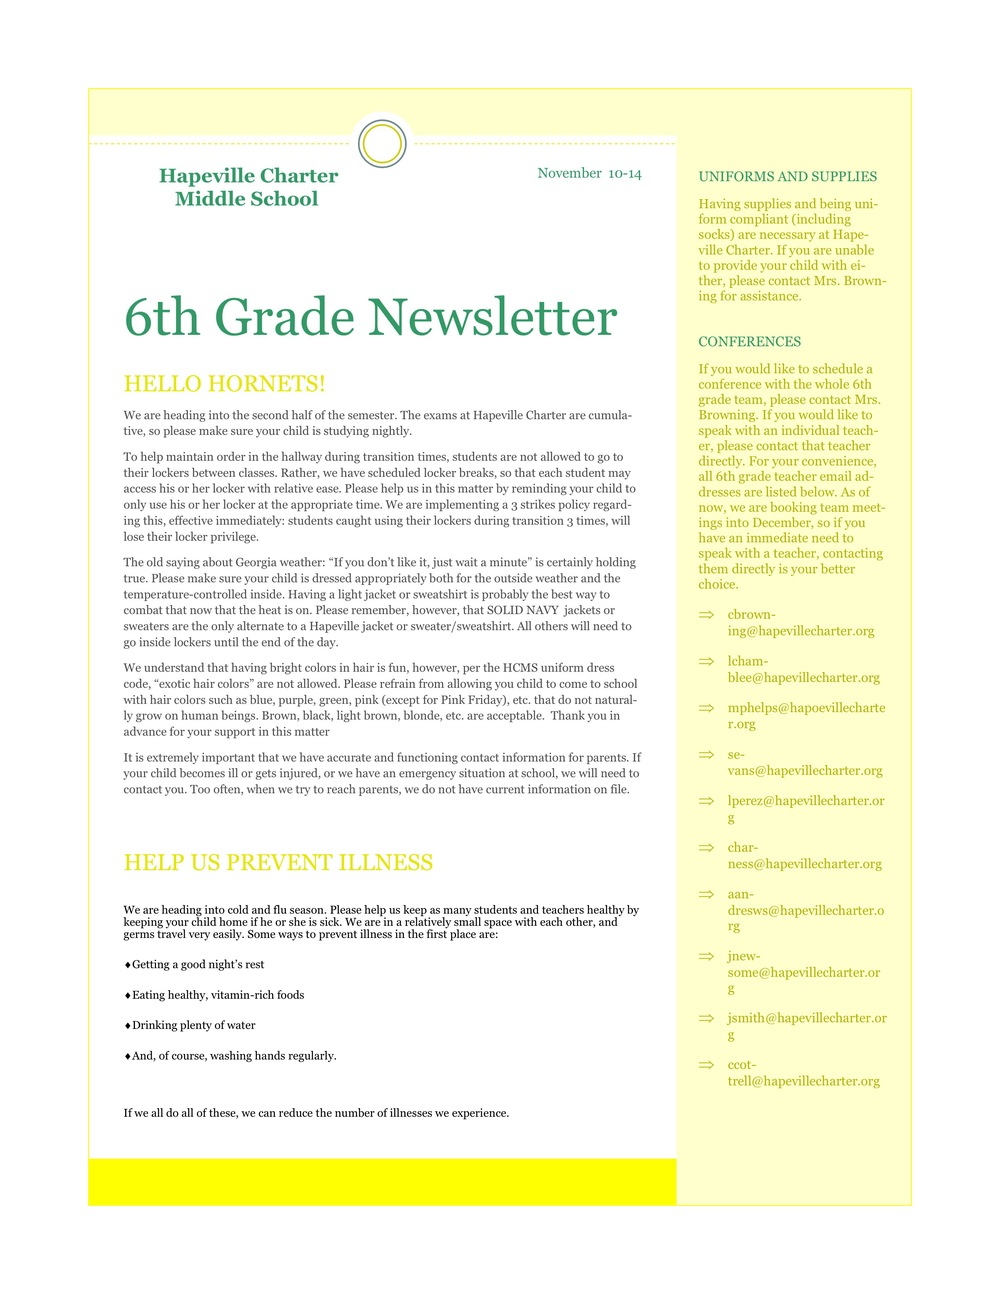 Newsletter Image6th grade November 10-14.jpeg